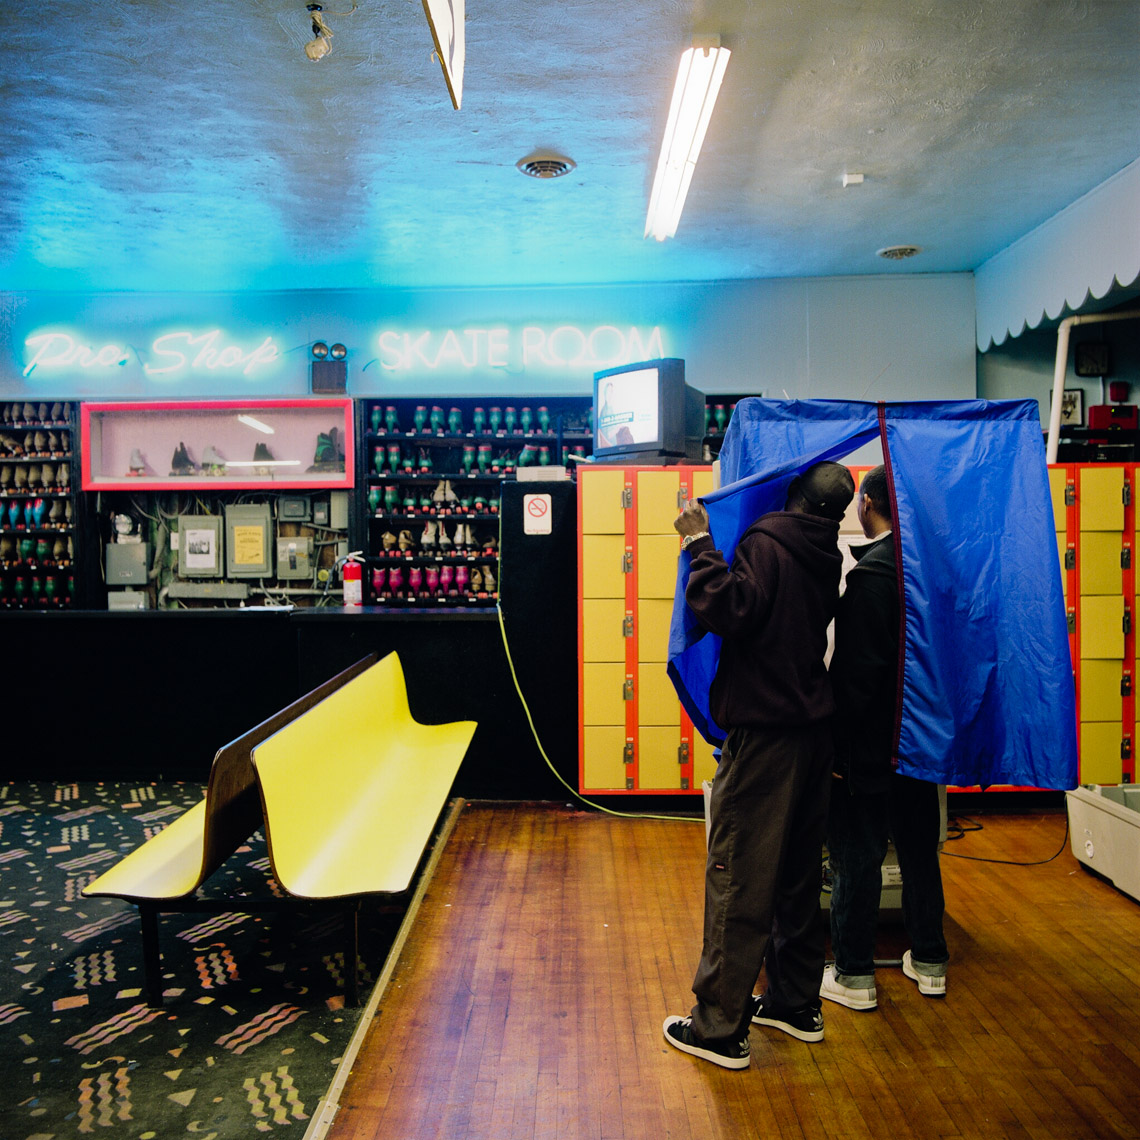 Image: © Ryan Donnell, The Polling Place Project, Roller Rink, Philadelphia